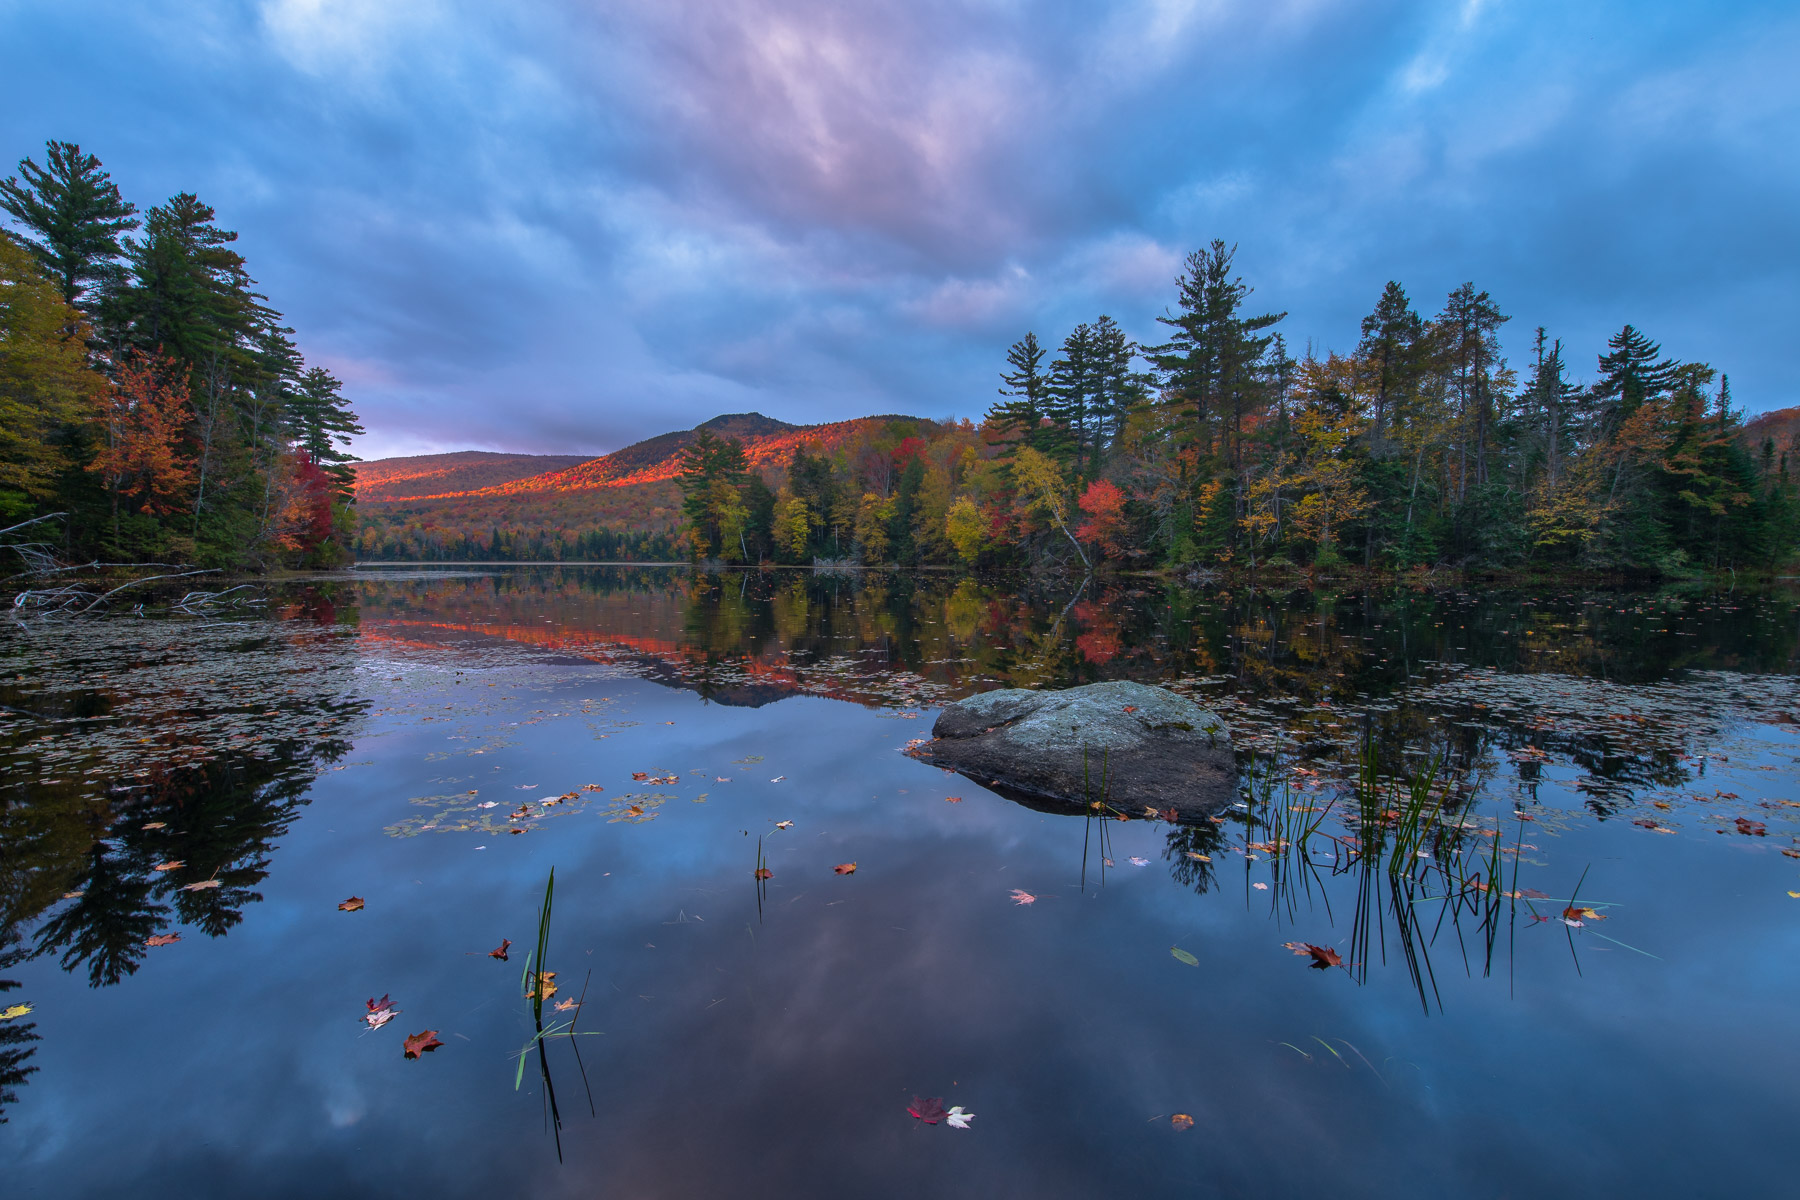 Autumn reflections on Lefferts Pond at sunrise, Green Mountain National Forest, Vermont.